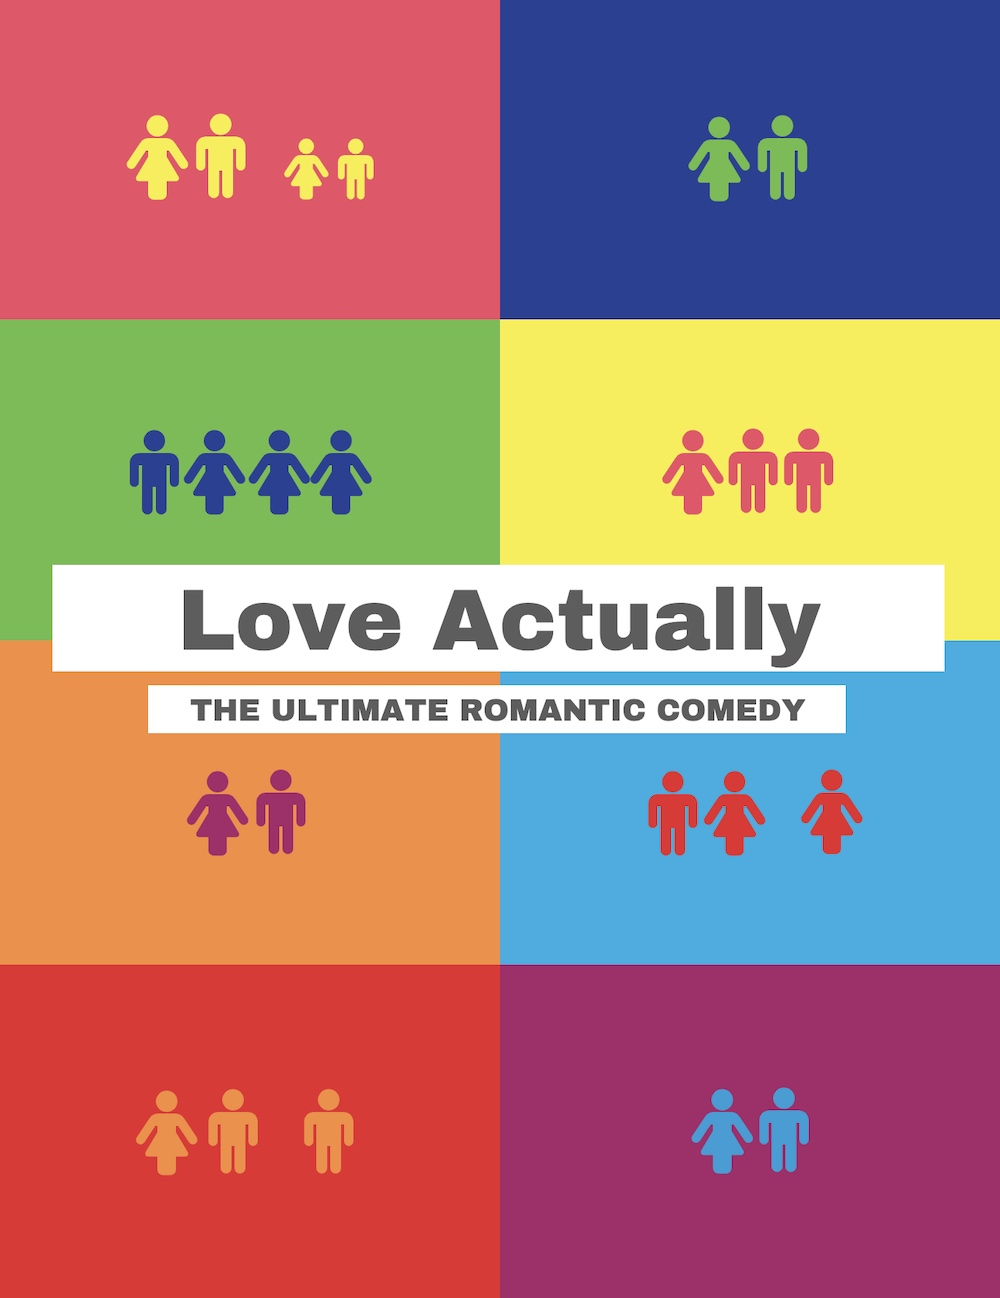 Love Actually Creative Movie Poster Ideas